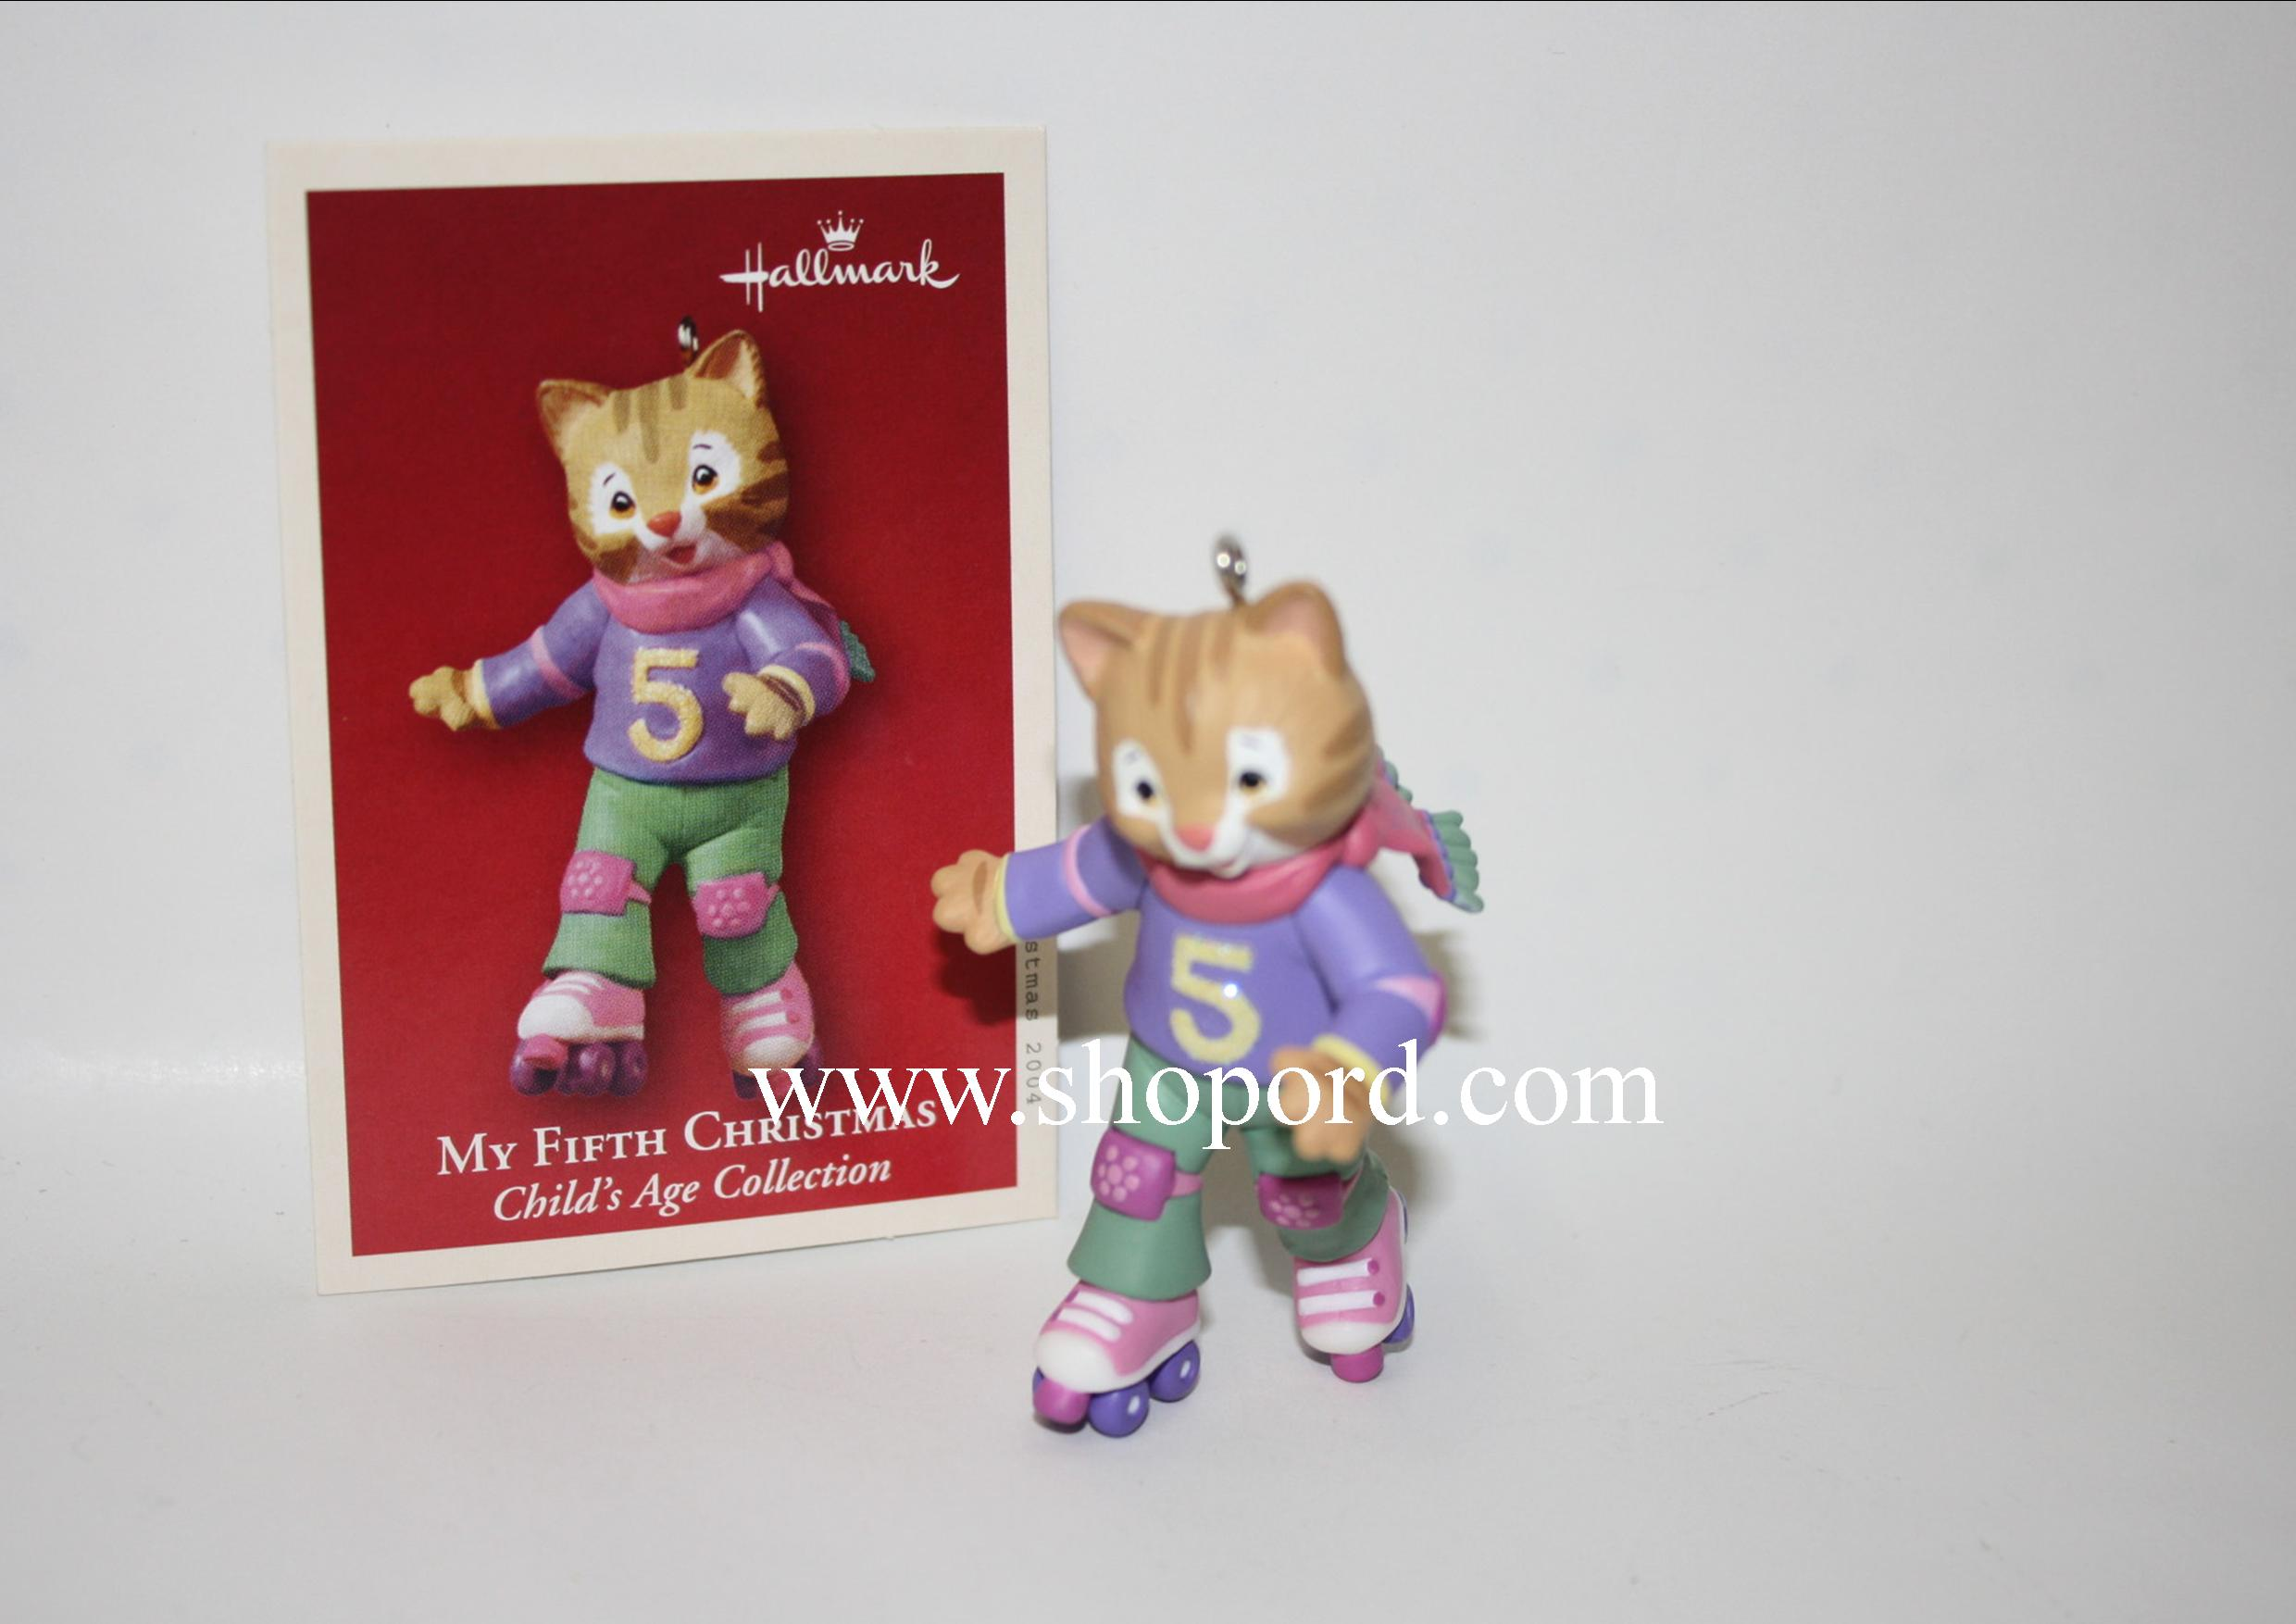 Hallmark 2004 My Fifth Christmas Childs Age Collection Girl Ornament QXG5704 Box Bent